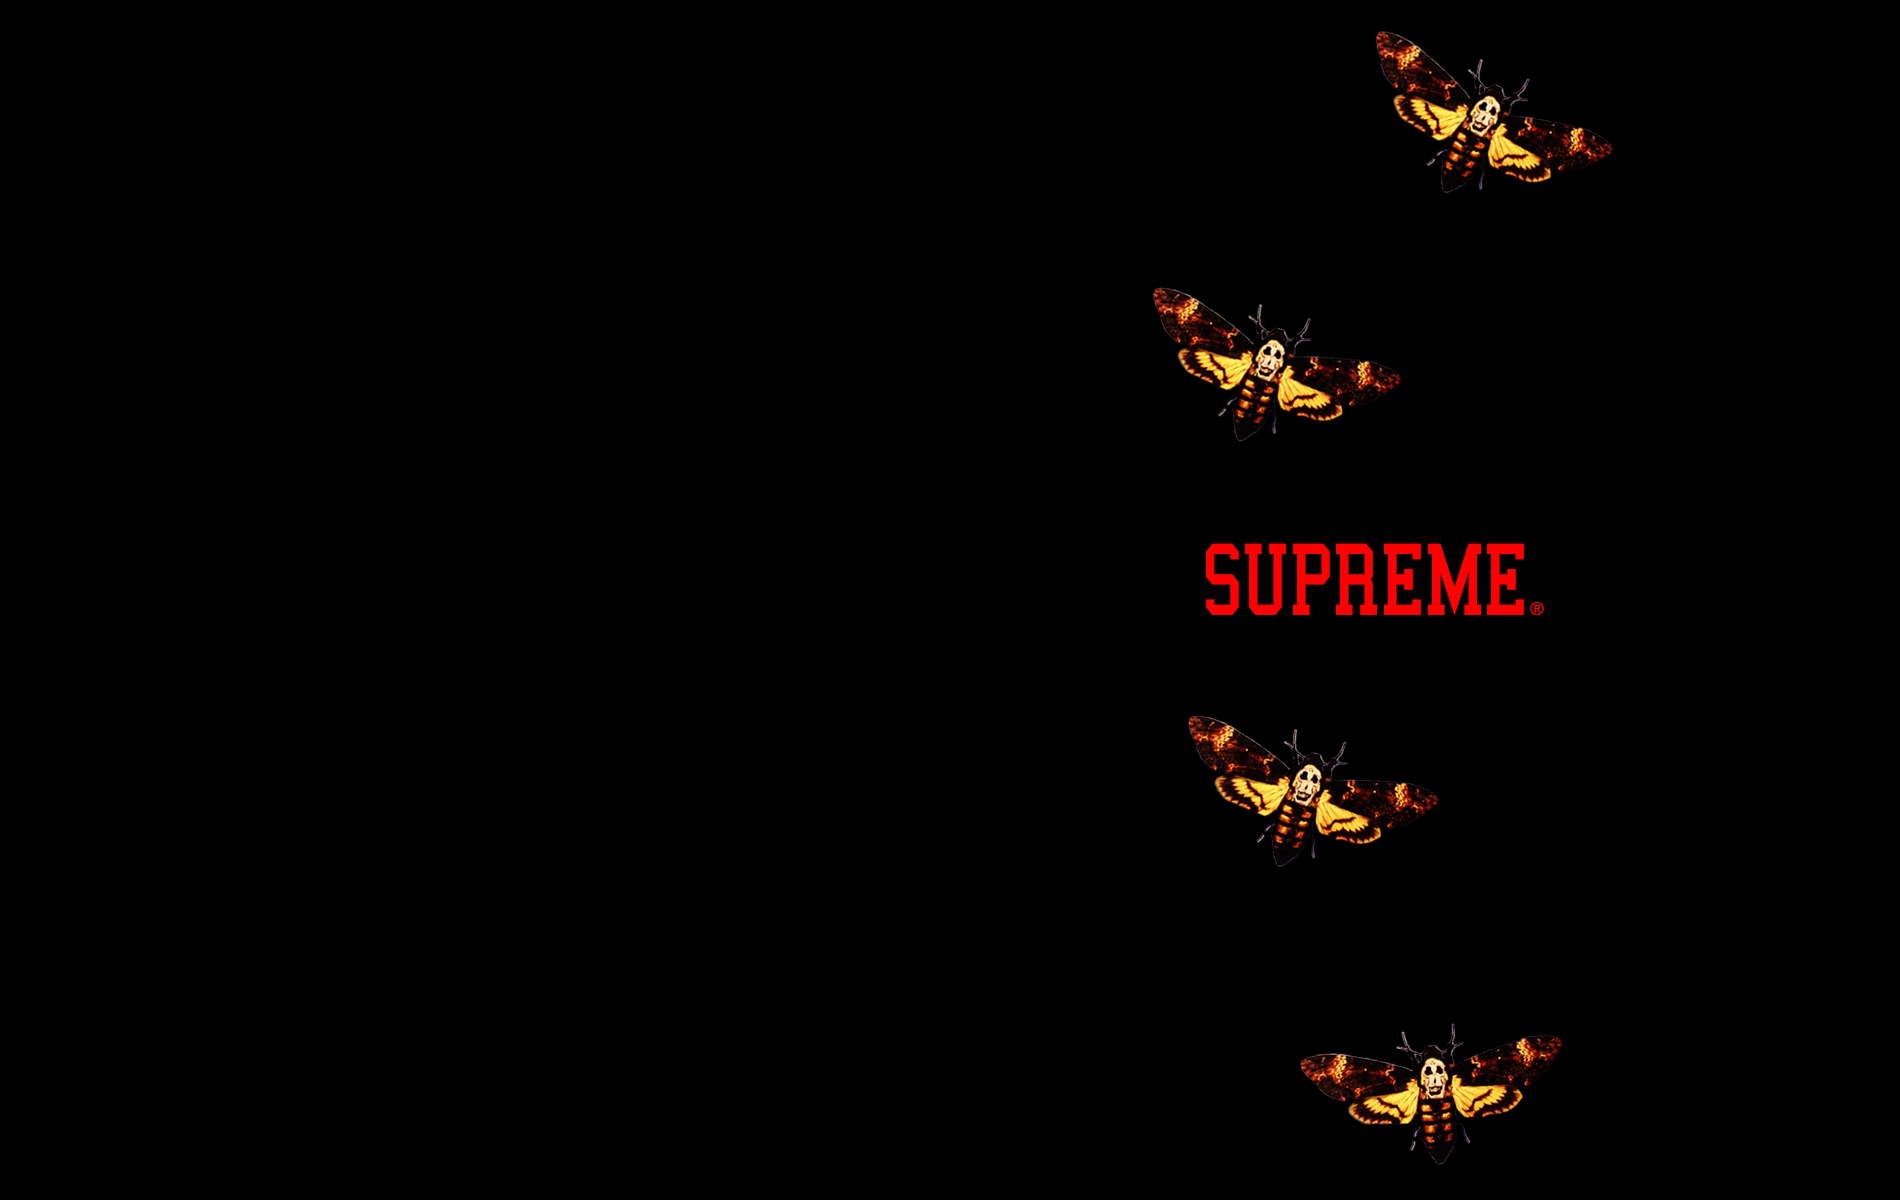 Supreme Wallpapers desktop and mobile HD 47